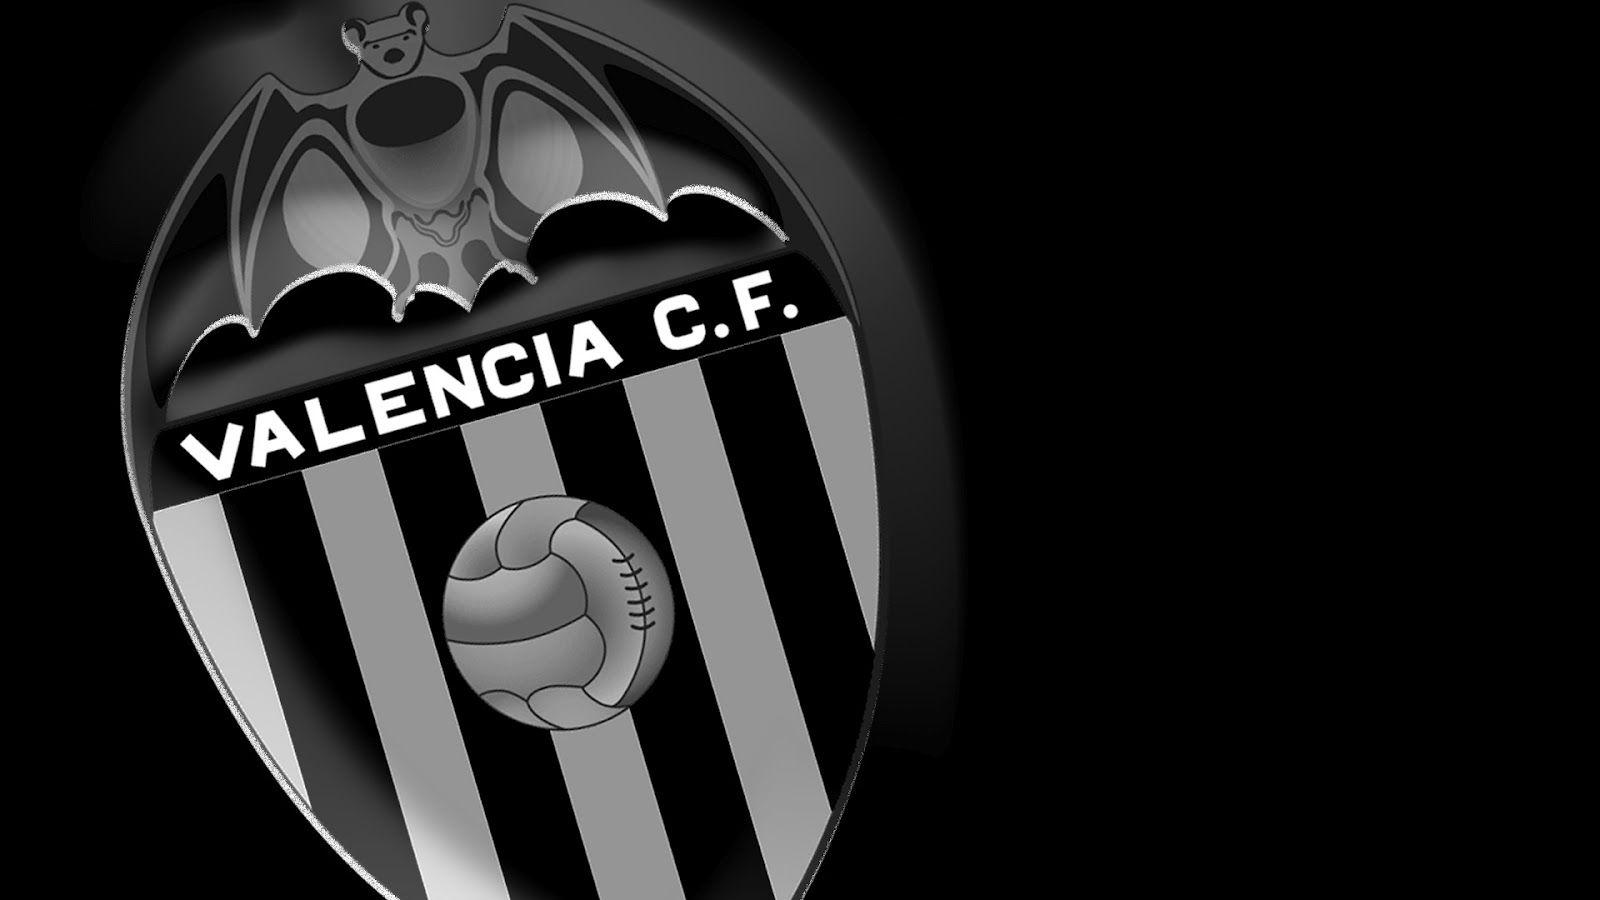 Valencia CF | pics | Pinterest | Valencia and Football team